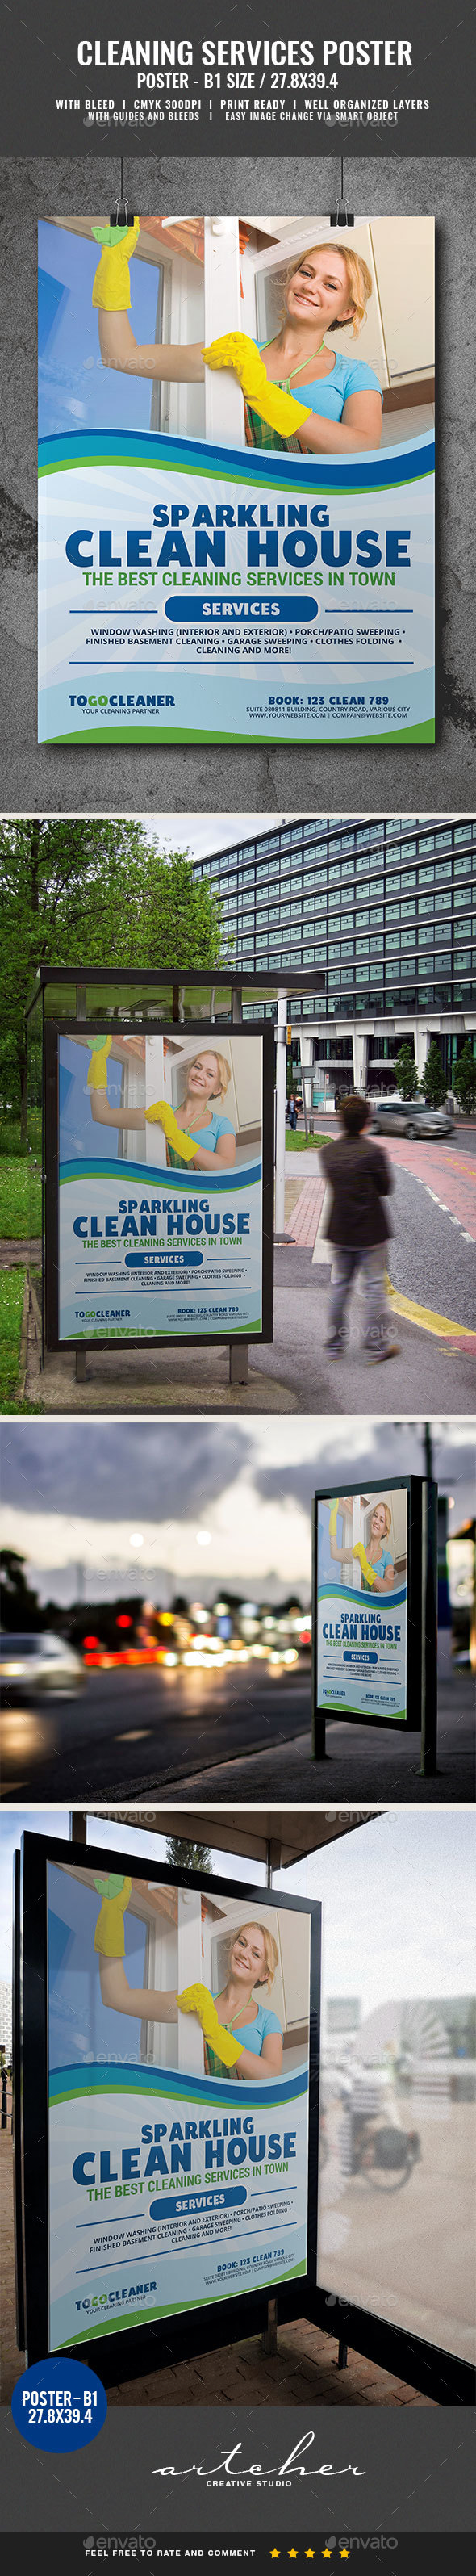 Cleaning Services Poster Template - Signage Print Templates